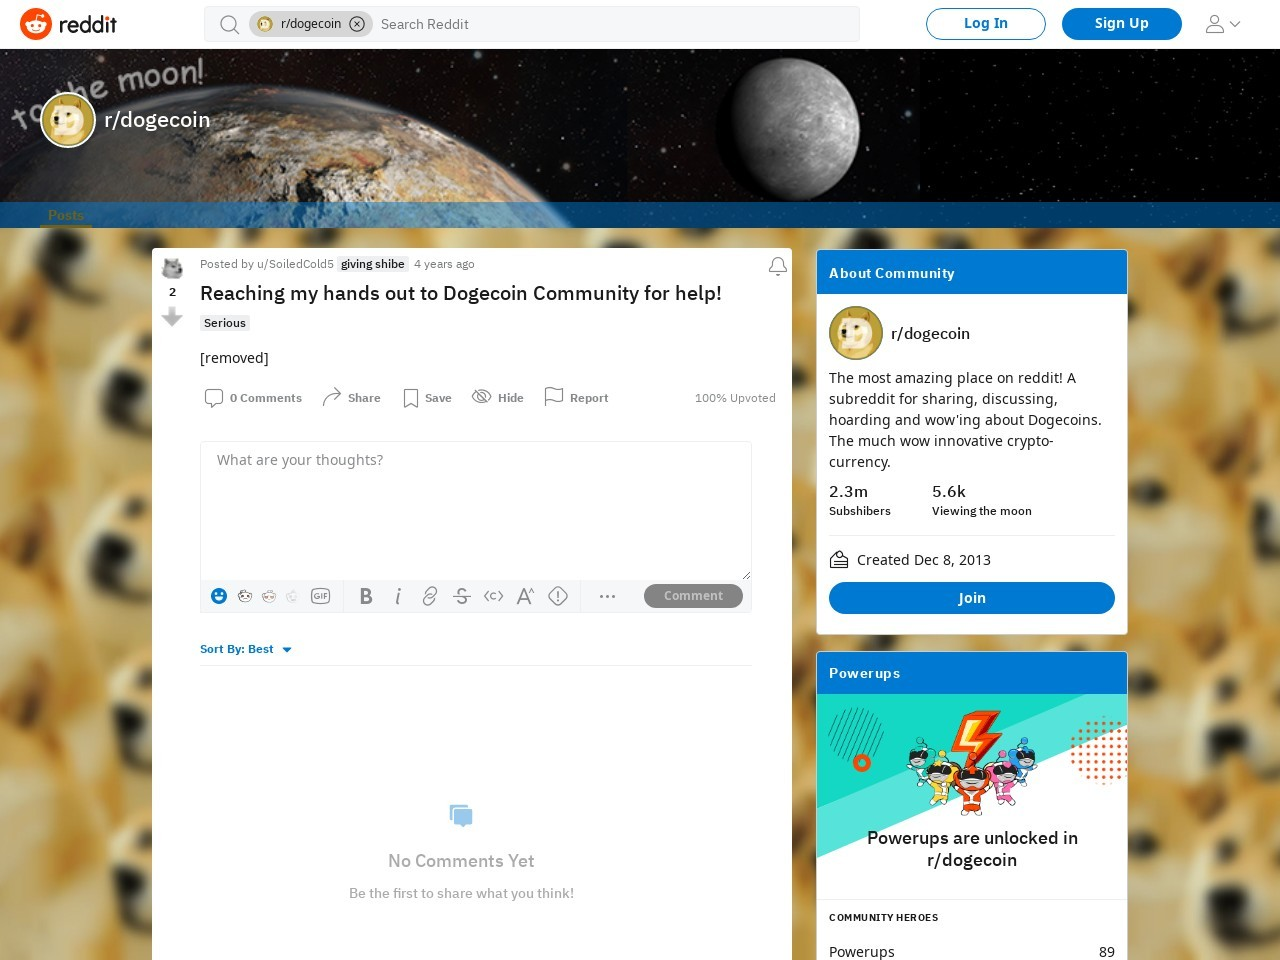 Reaching my hands out to Dogecoin Community for help!